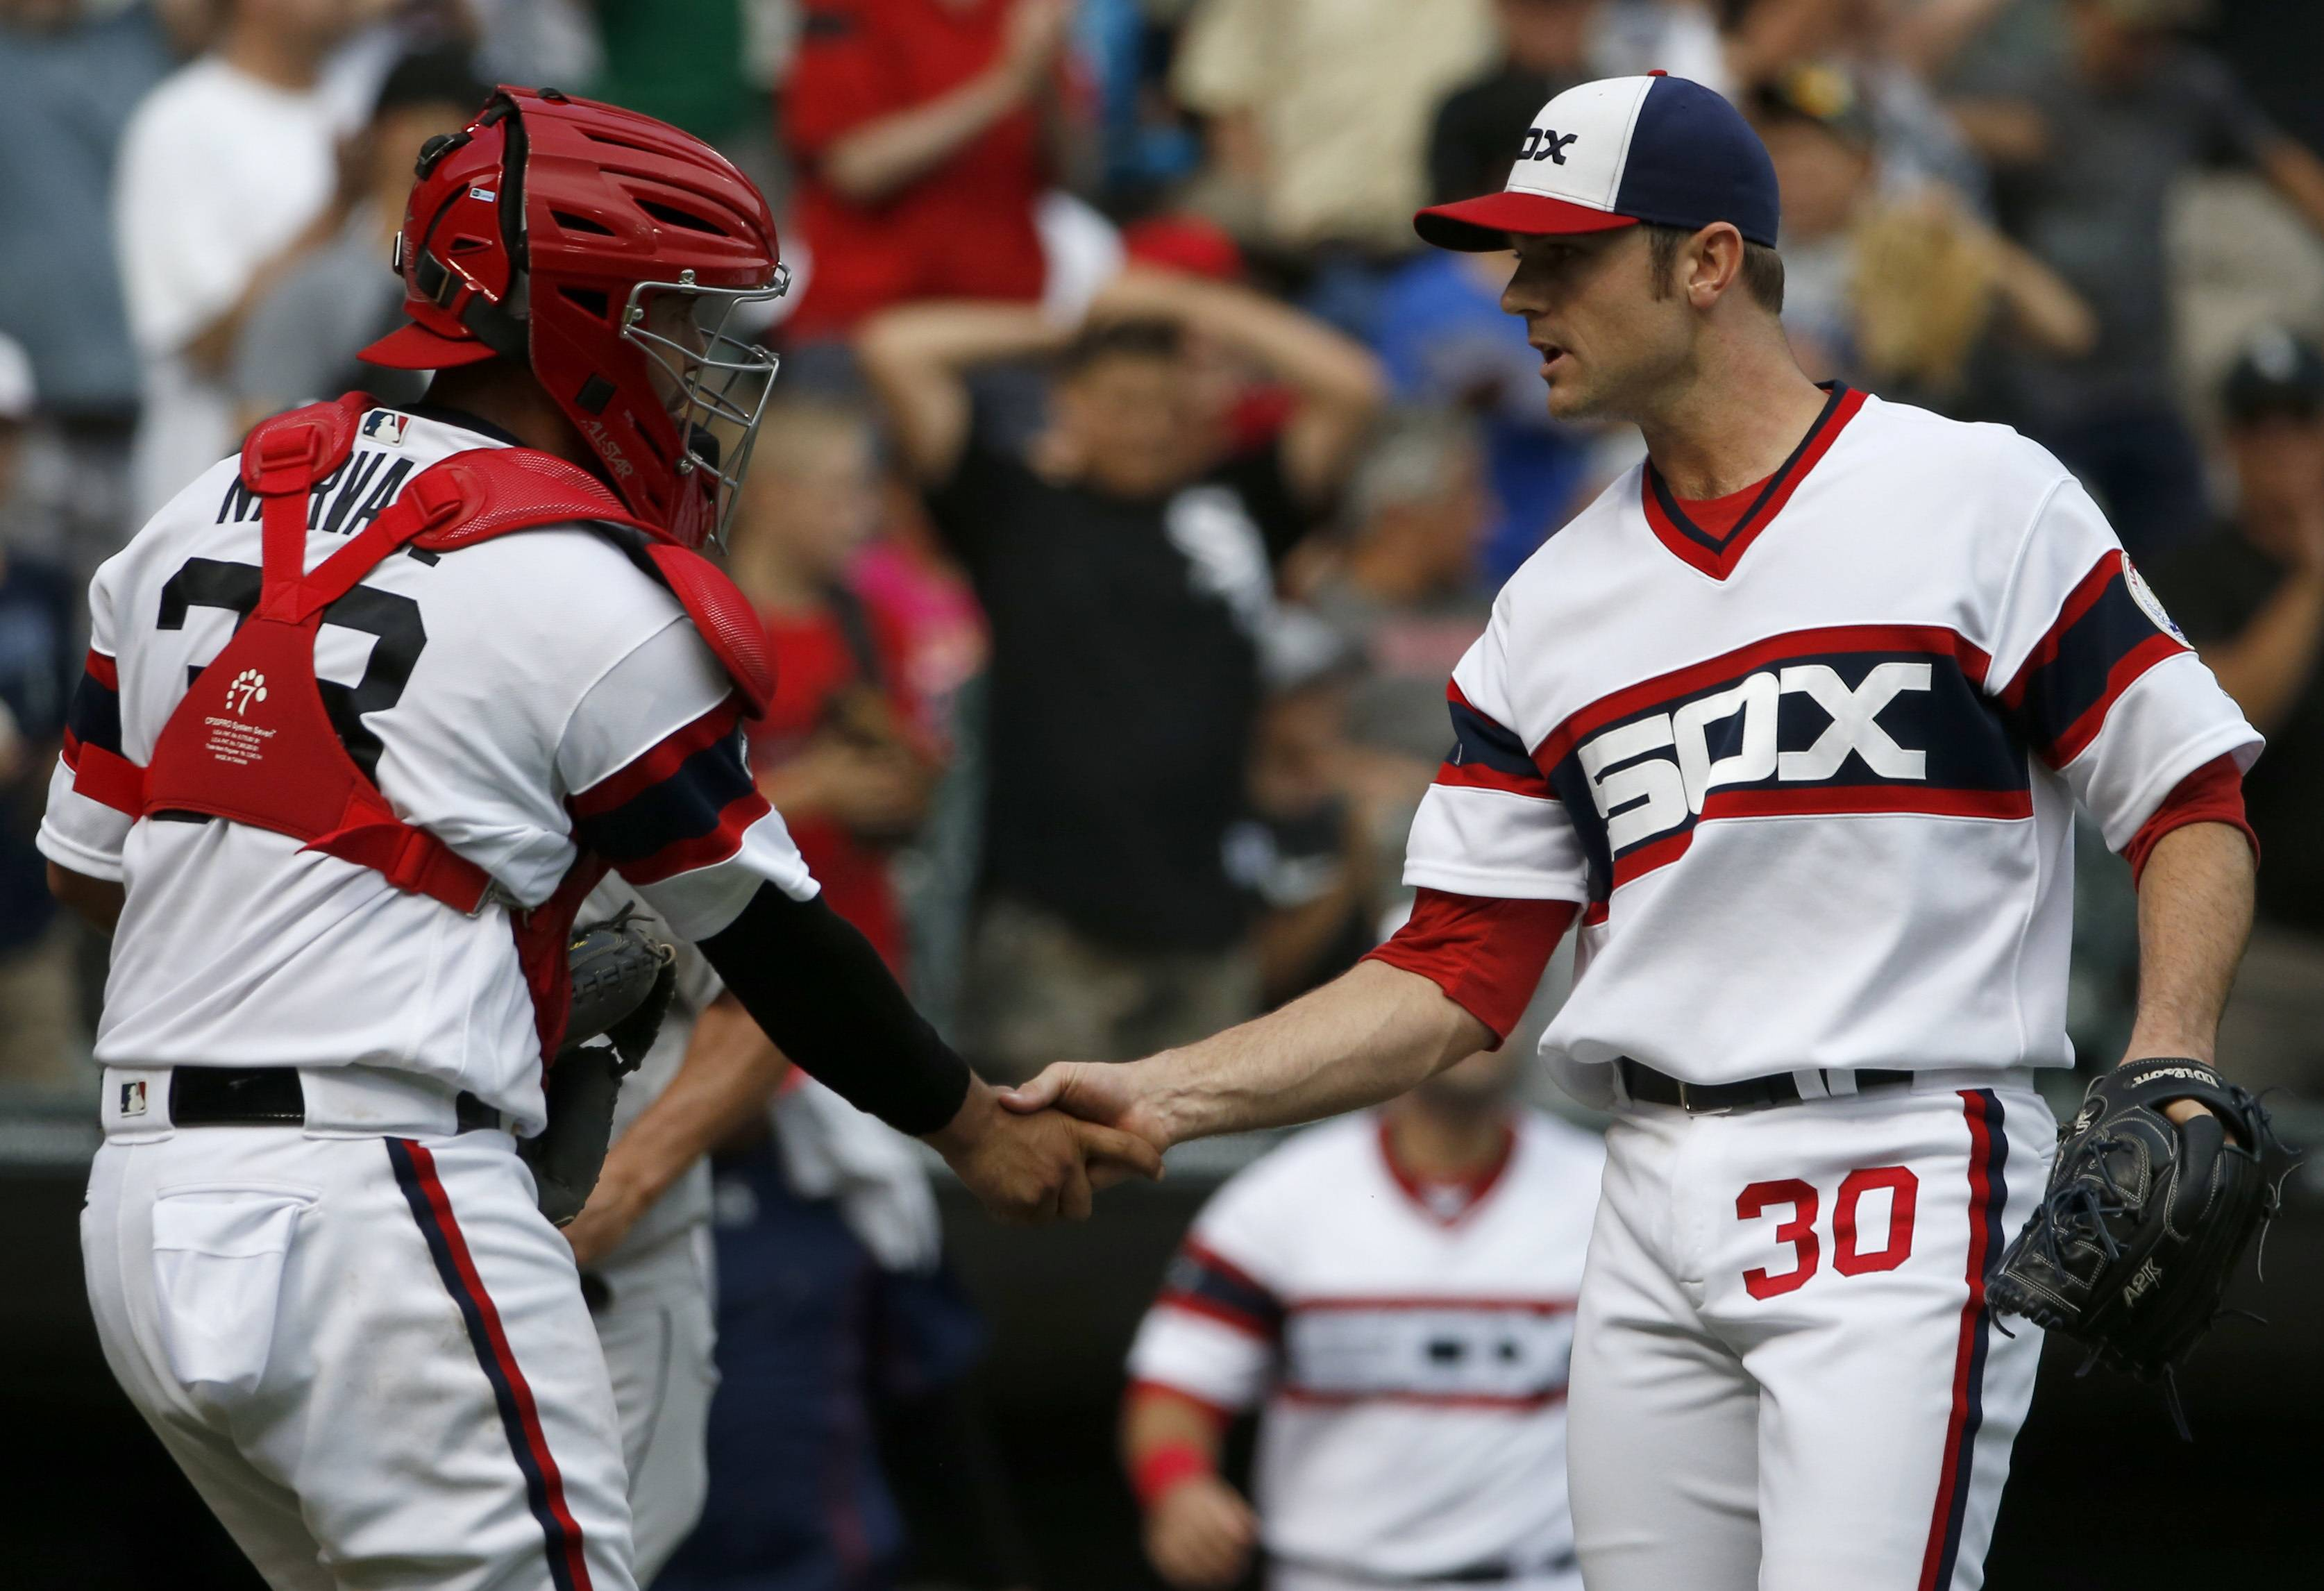 Chicago White Sox closer David Robertson, right, celebrates with catcher Omar Narvaez after they defeated the Seattle Mariners in a baseball game in Chicago, Sunday, Aug. 28, 2016. (AP Photo/Nam Y. Huh)